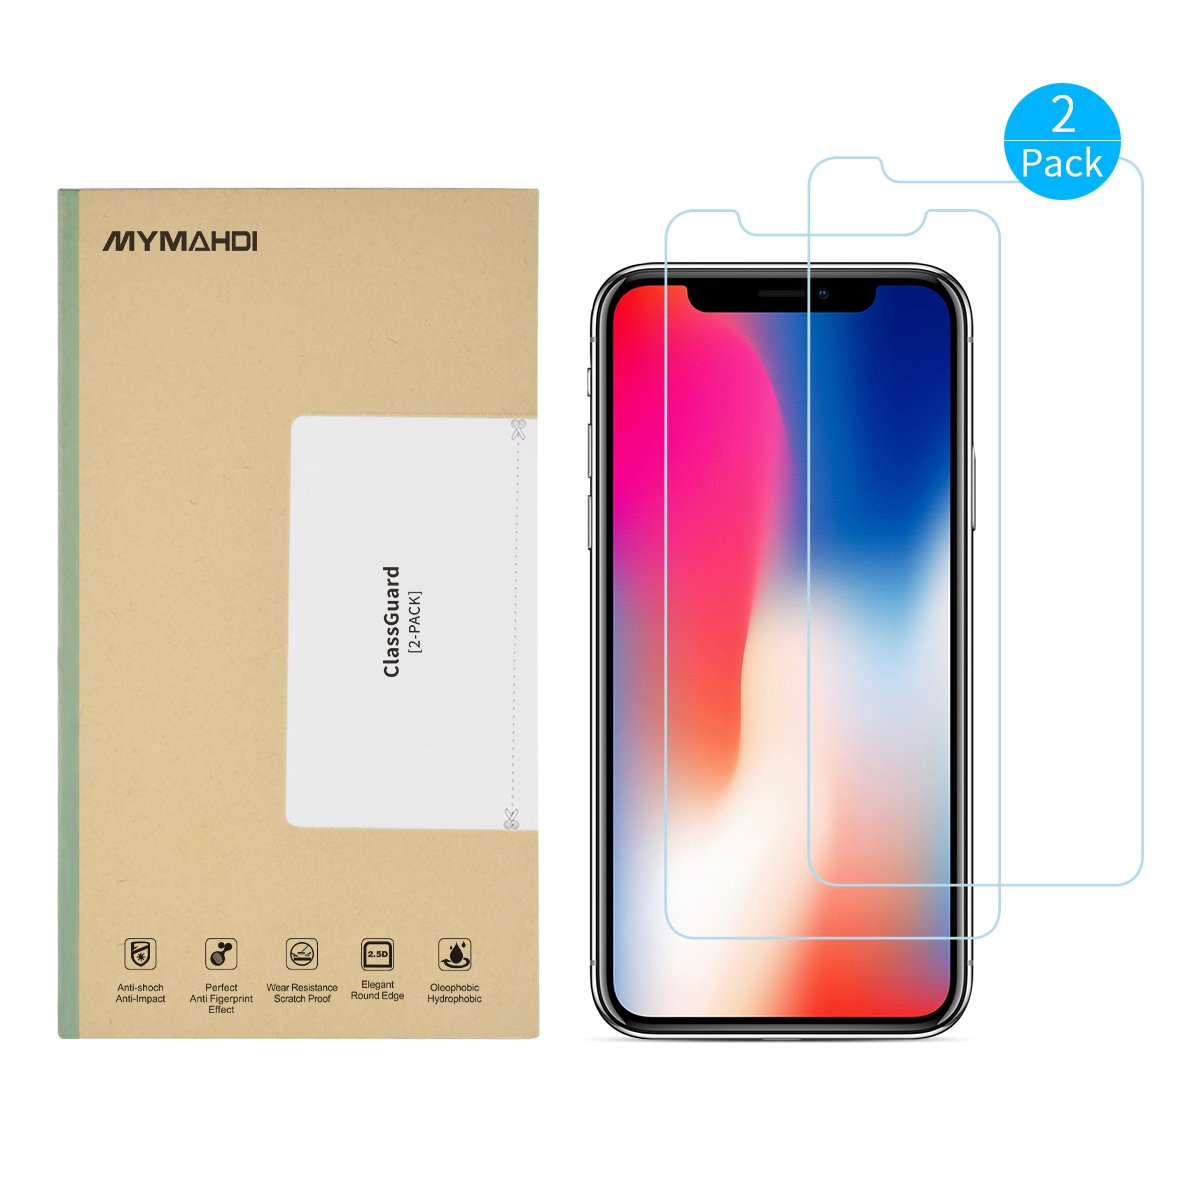 MYMAHDI iPhone X Screen Protector, 2 Pack Tempered Glass and 1 Camera Screen Protector Anti-fingerprint High Light Penetration Ratio 9H Hardness Anti-scratch Bubble Free [Easy Install] [Ultra Clear]